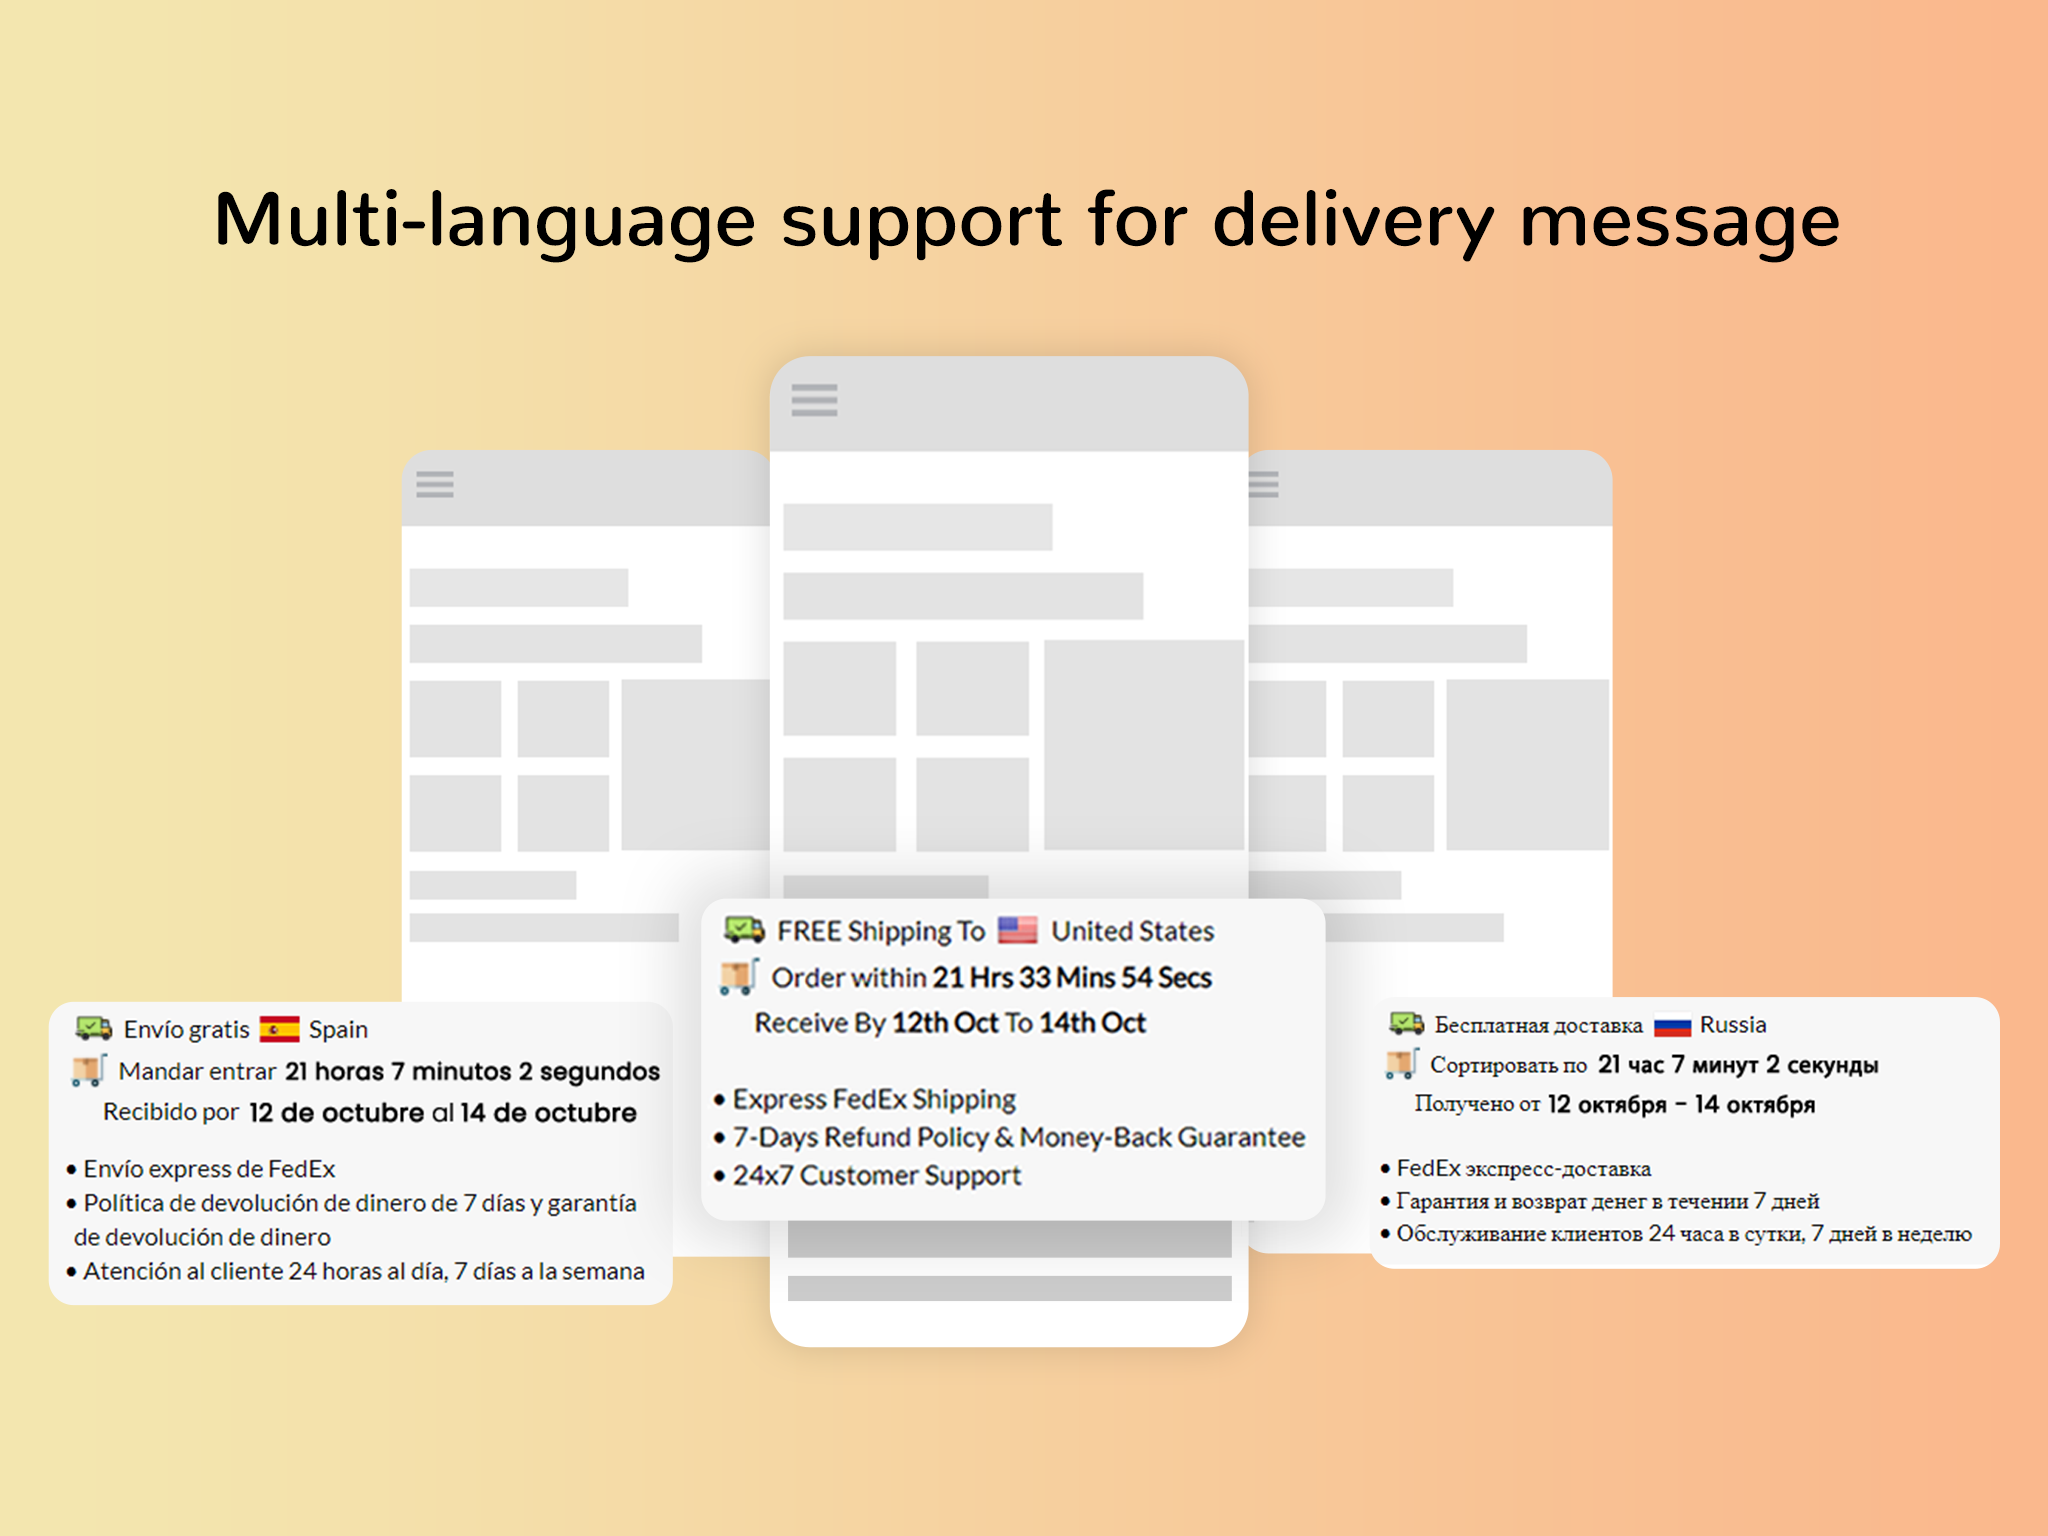 Multi-language support for configuring the delivery message